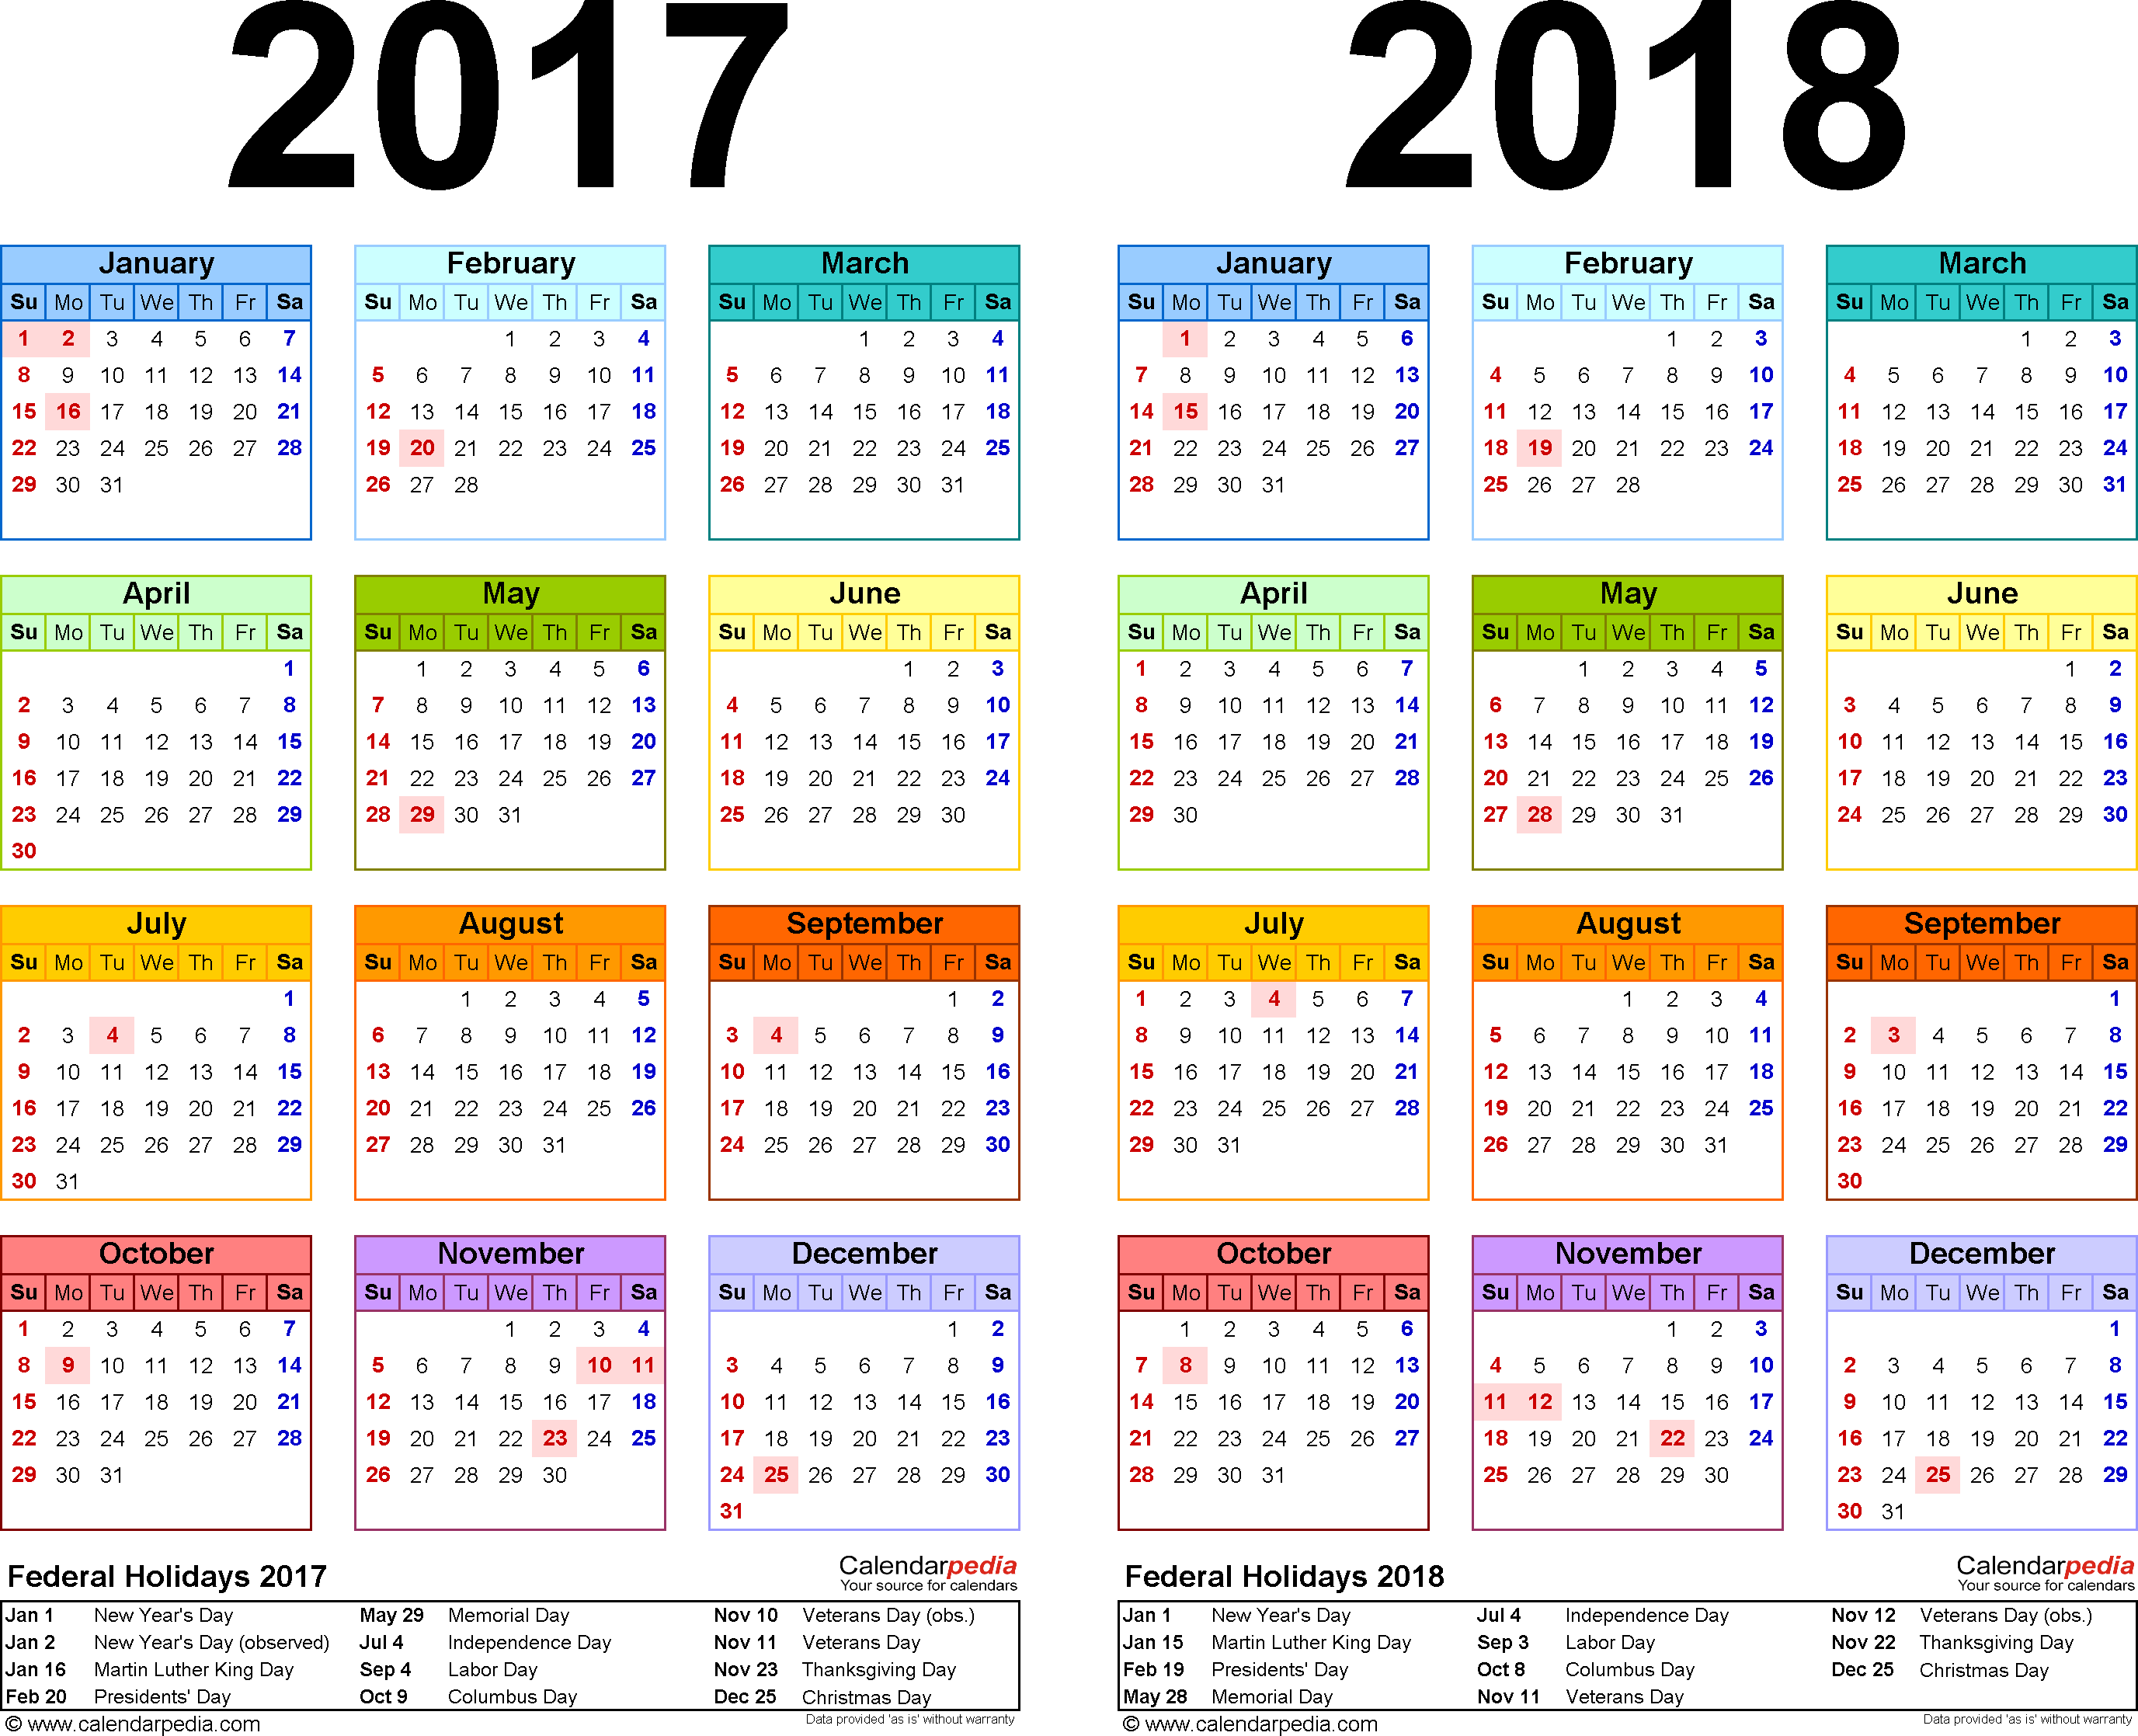 2018 calendar open office